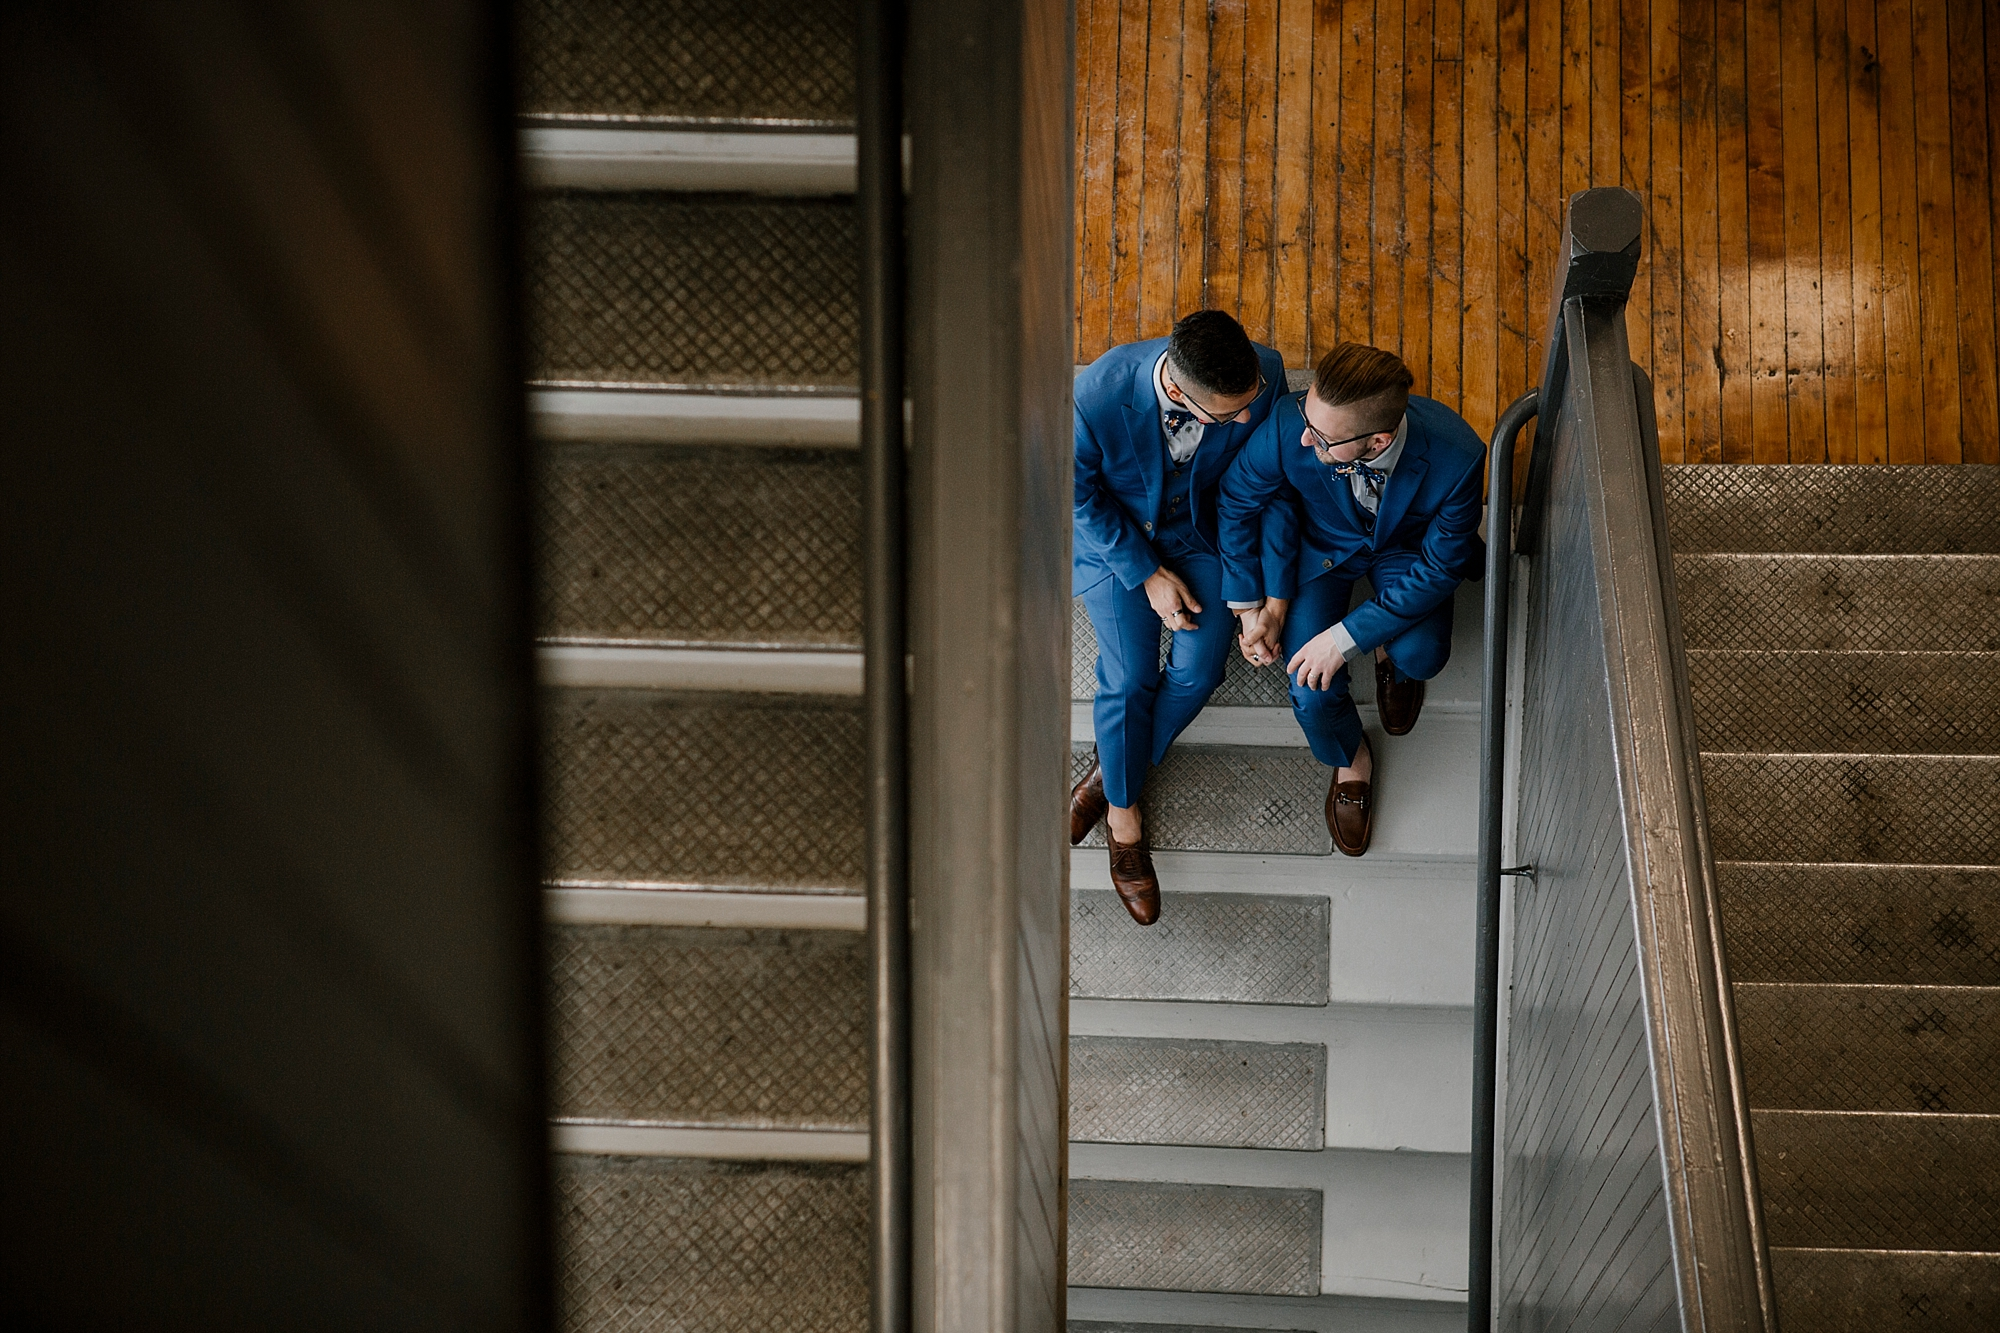 Joe_Mac_Creative_Philadelphia_Philly_LGBT_Gay_Engagement_Wedding_Photography__0120.jpg